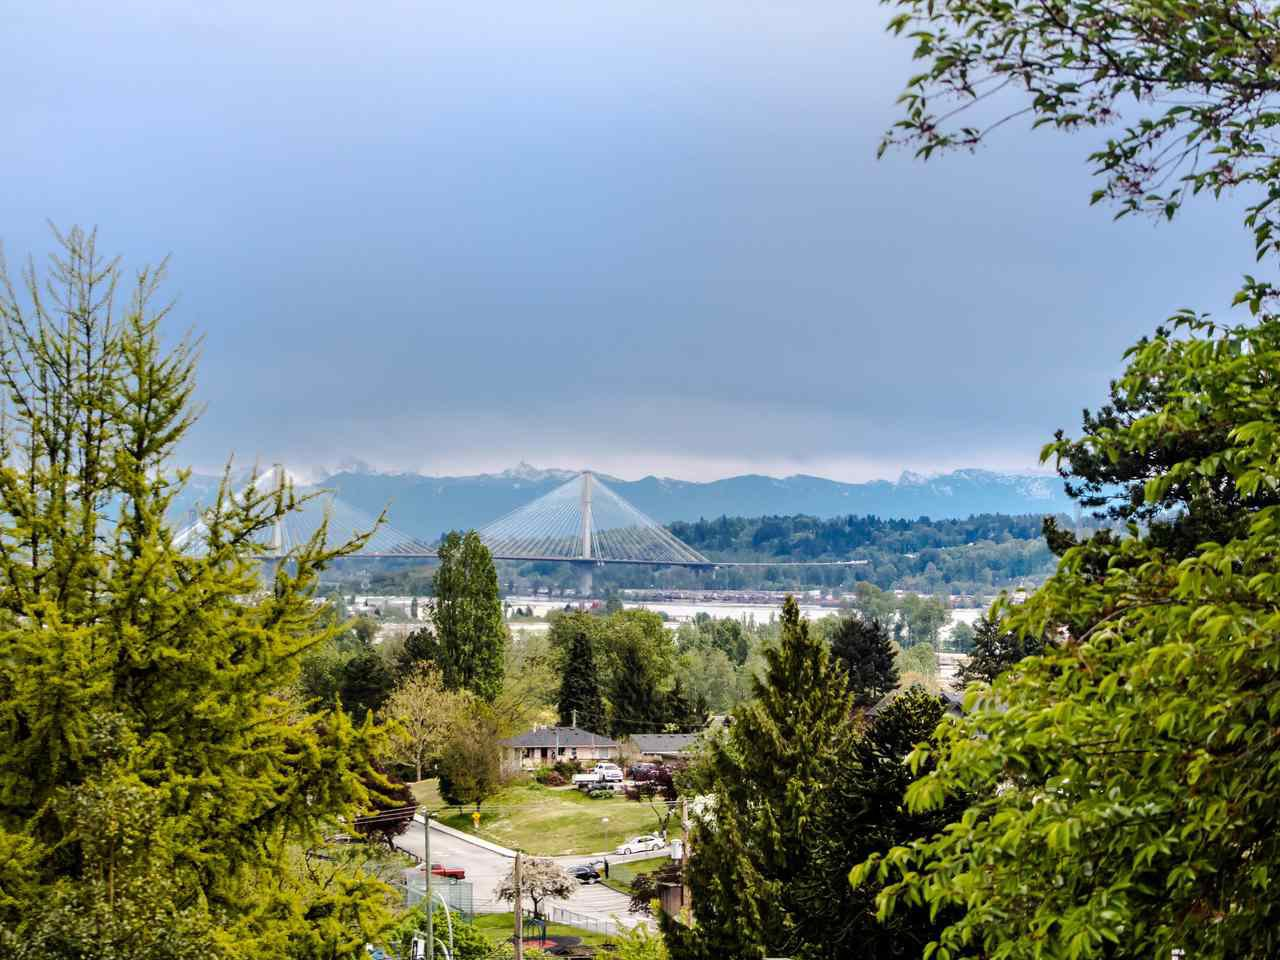 Photo 5: Photos: 545 GARFIELD Street in New Westminster: The Heights NW House for sale : MLS®# R2453912